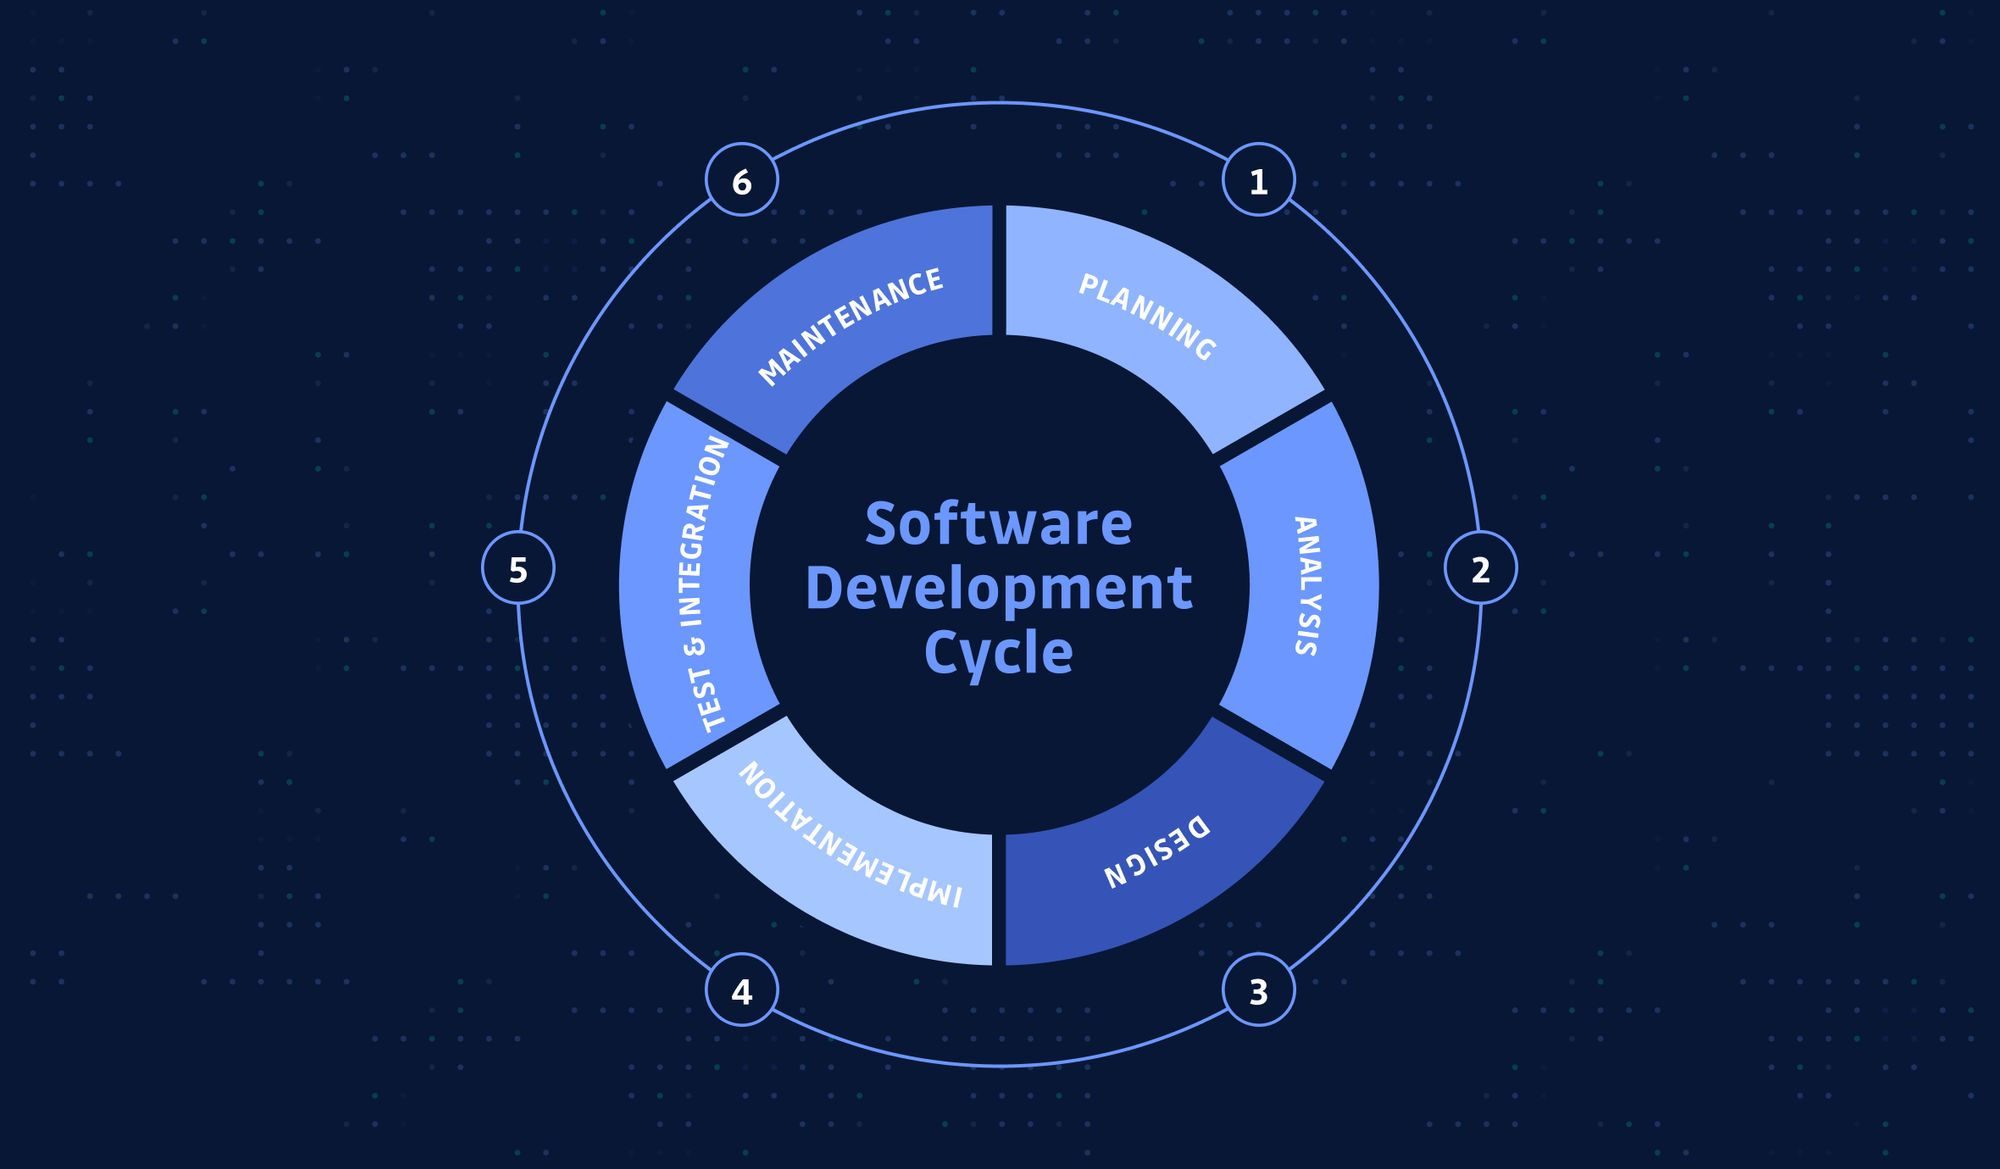 the Software Development Lifecycle